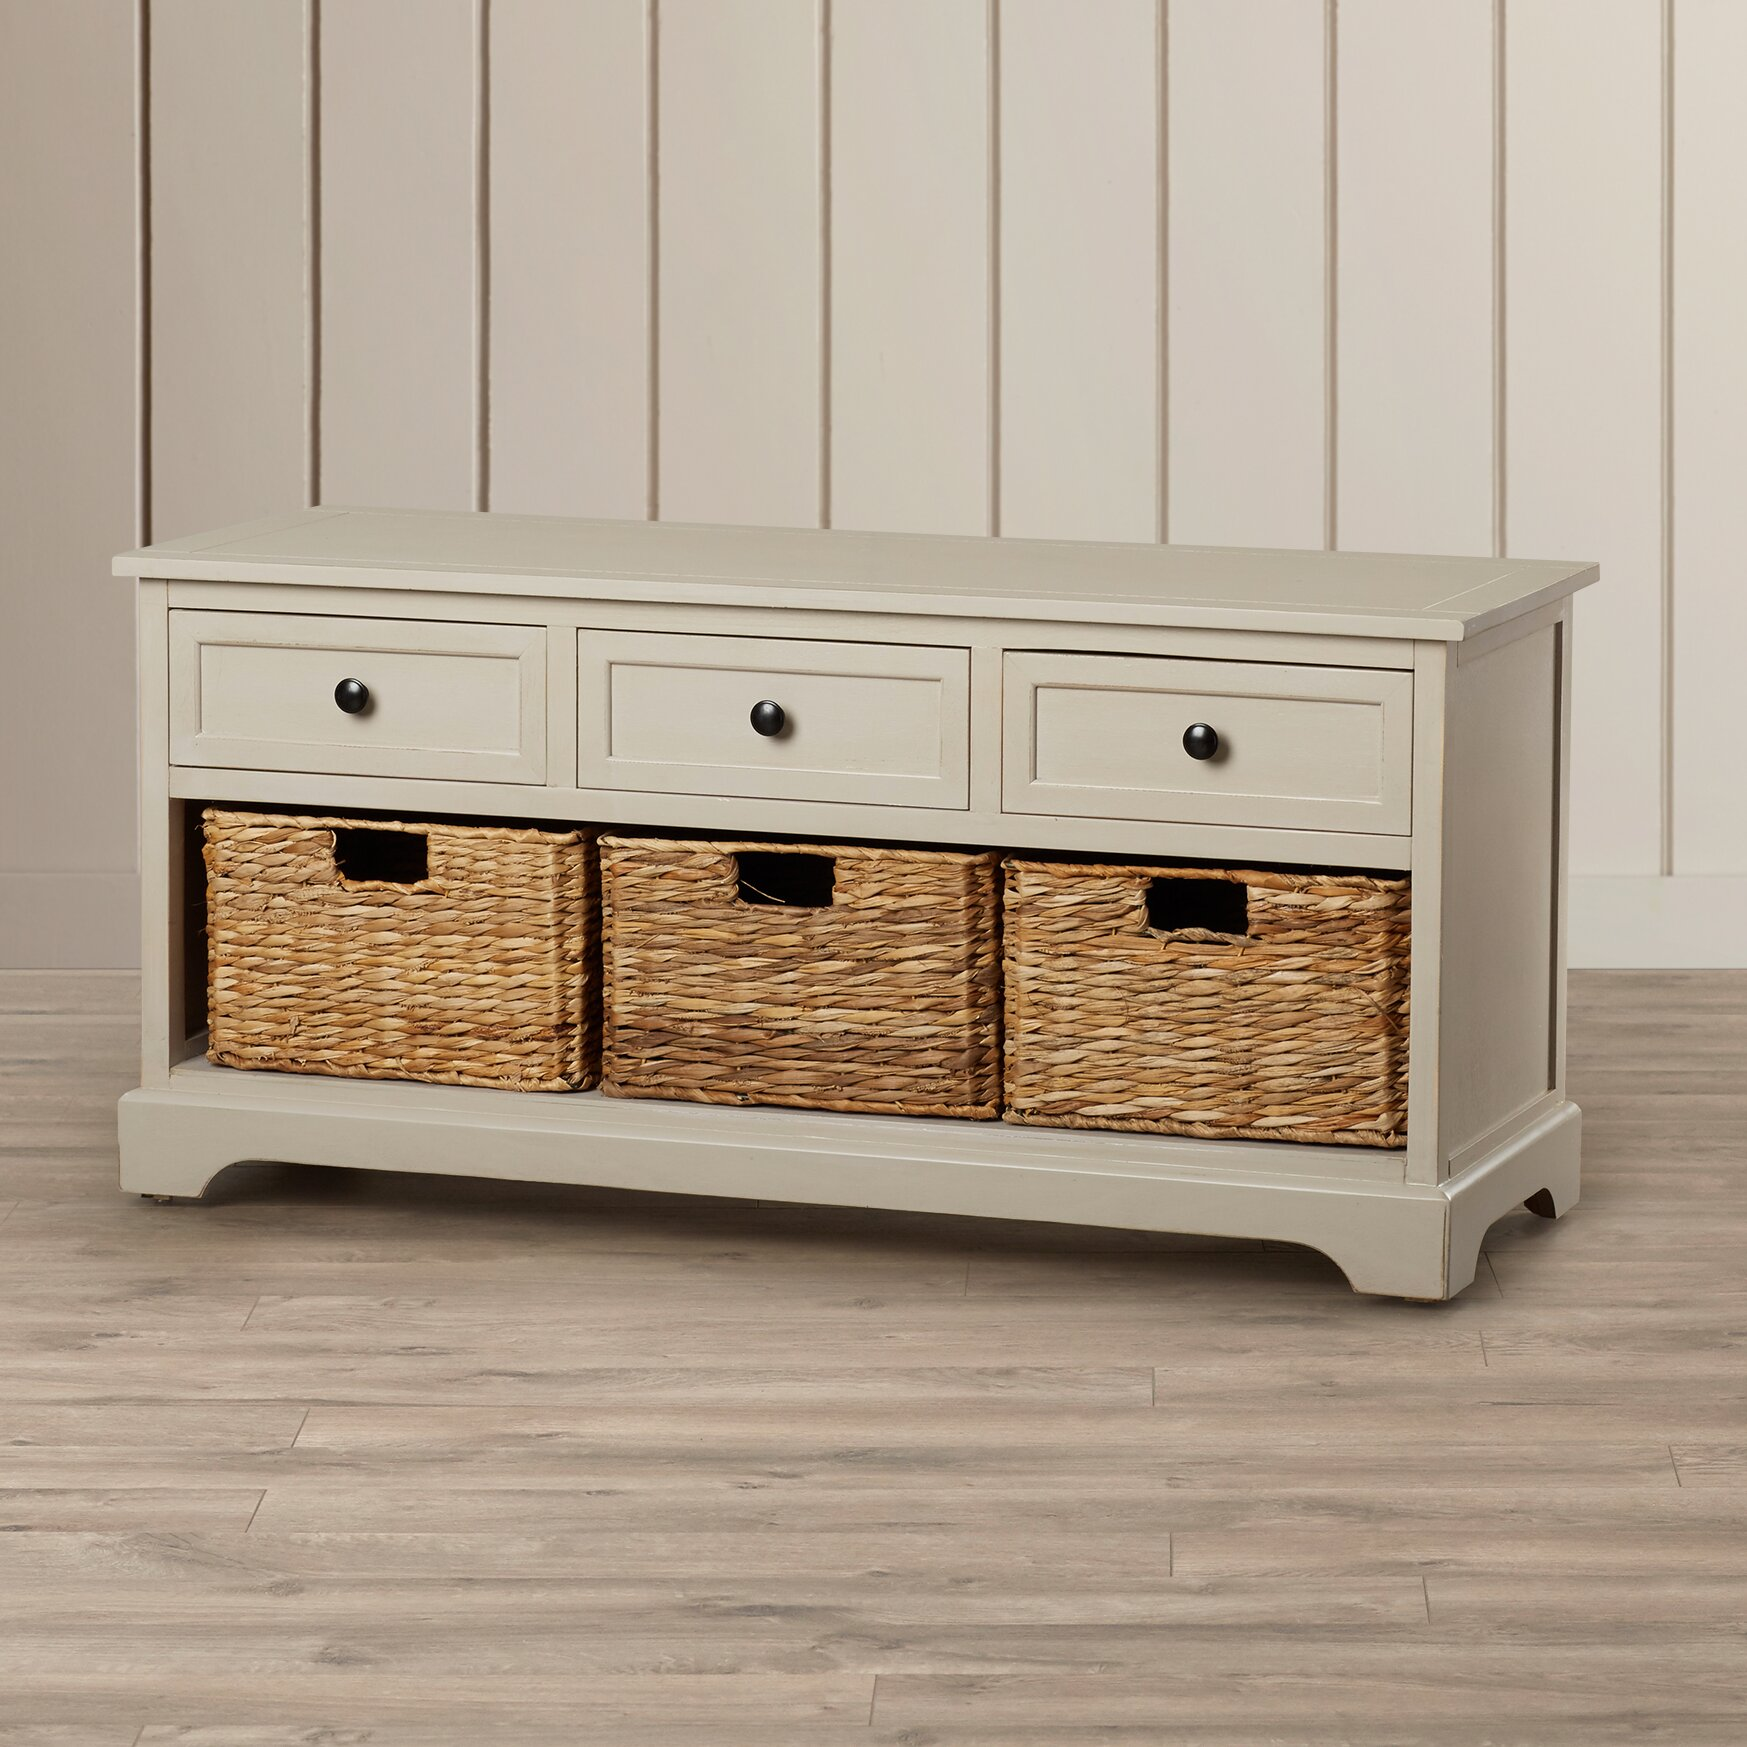 adorable entryway benche with storages | Beachcrest Home McKinley 3 Drawer Storage Entryway Bench ...